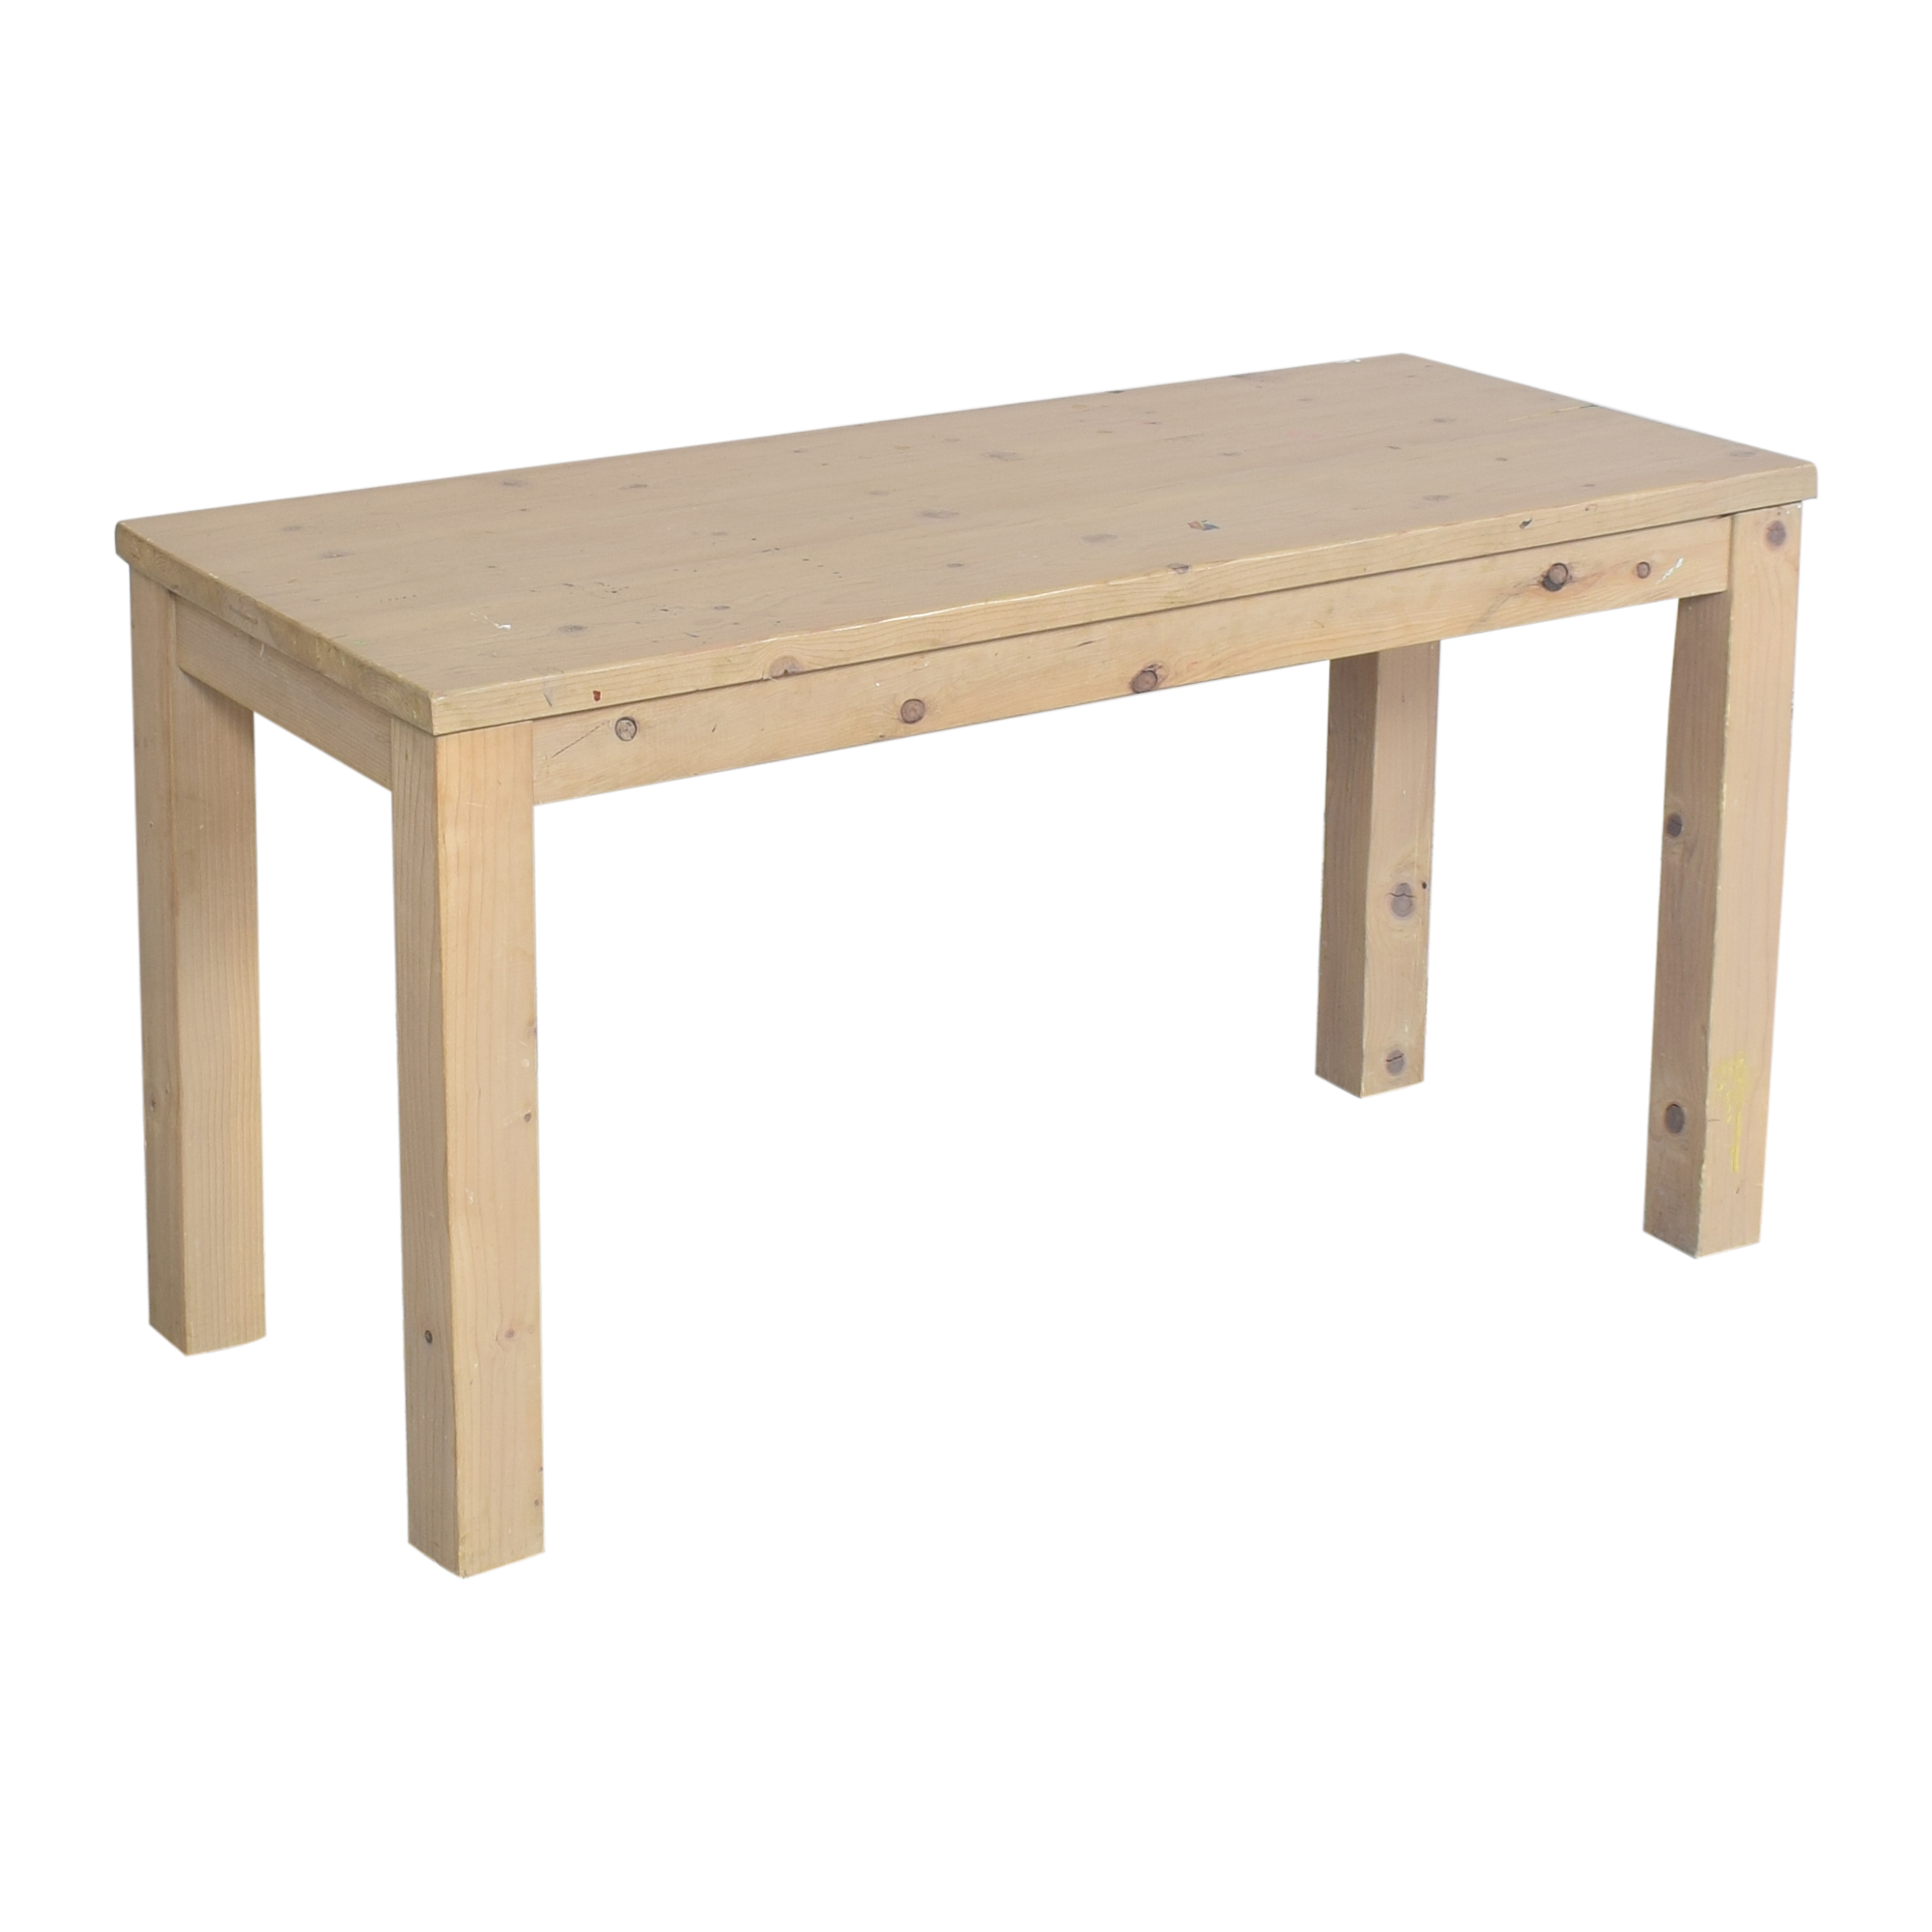 Etsy Etsy Parsons Dining Table ma